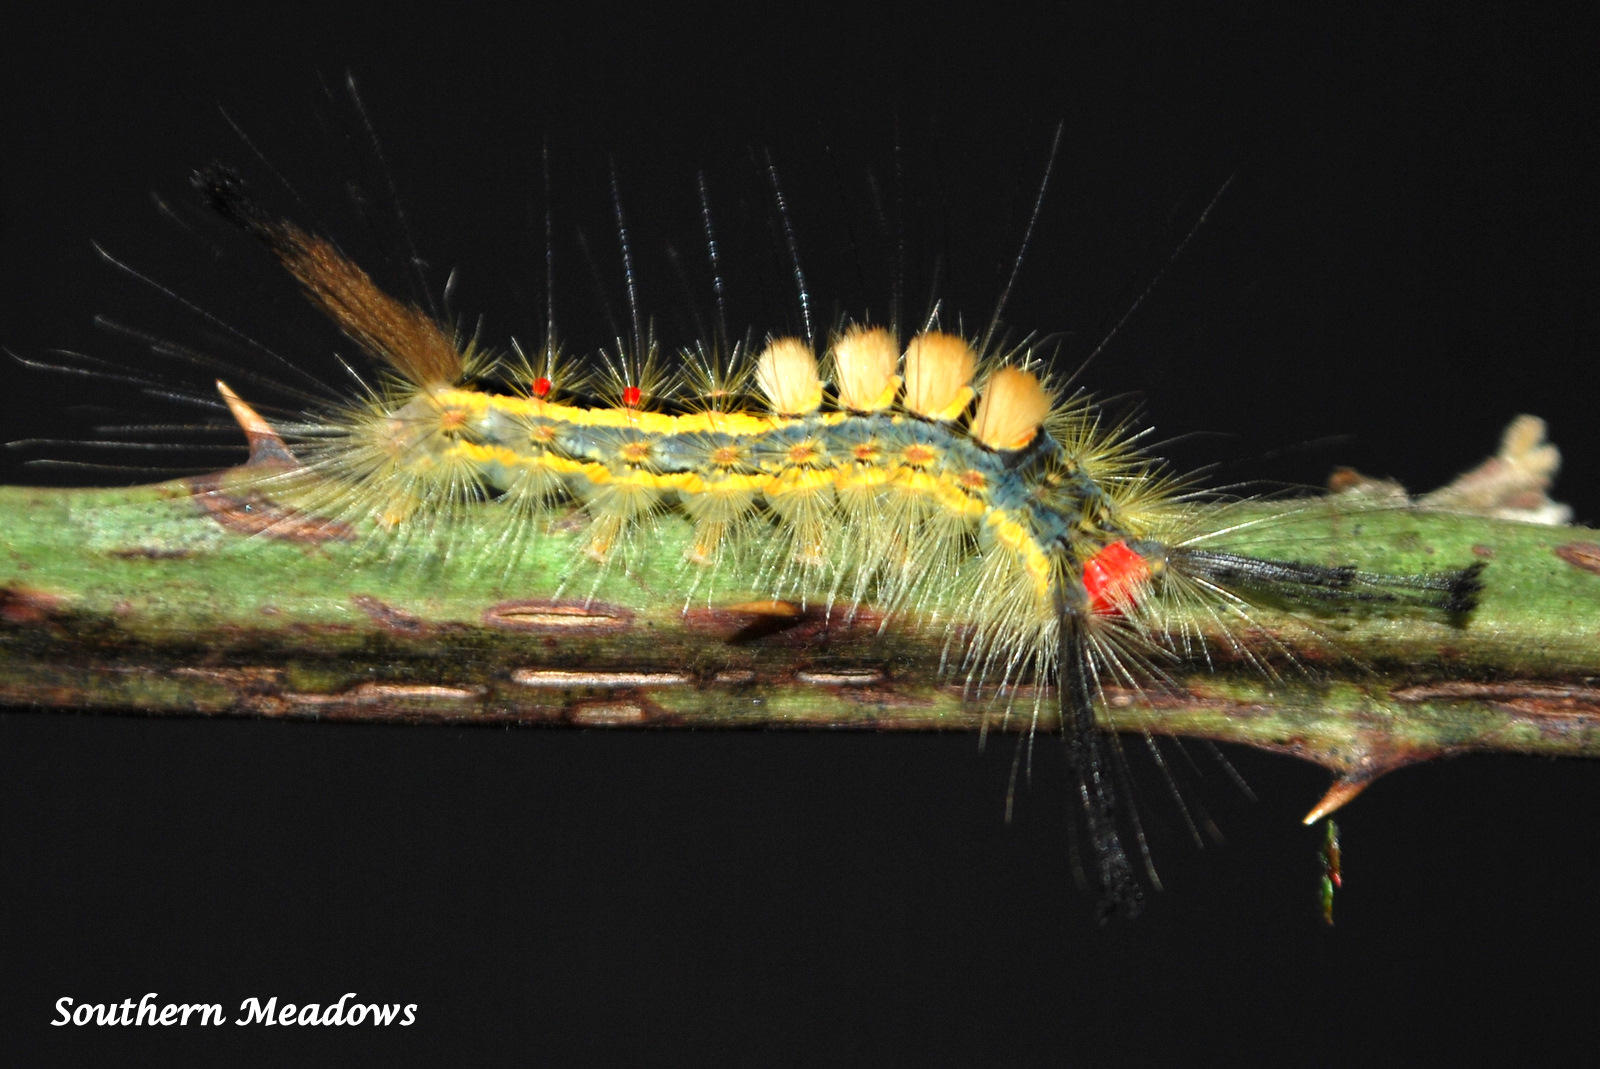 Green Caterpillar With Black And Yellow Stripes